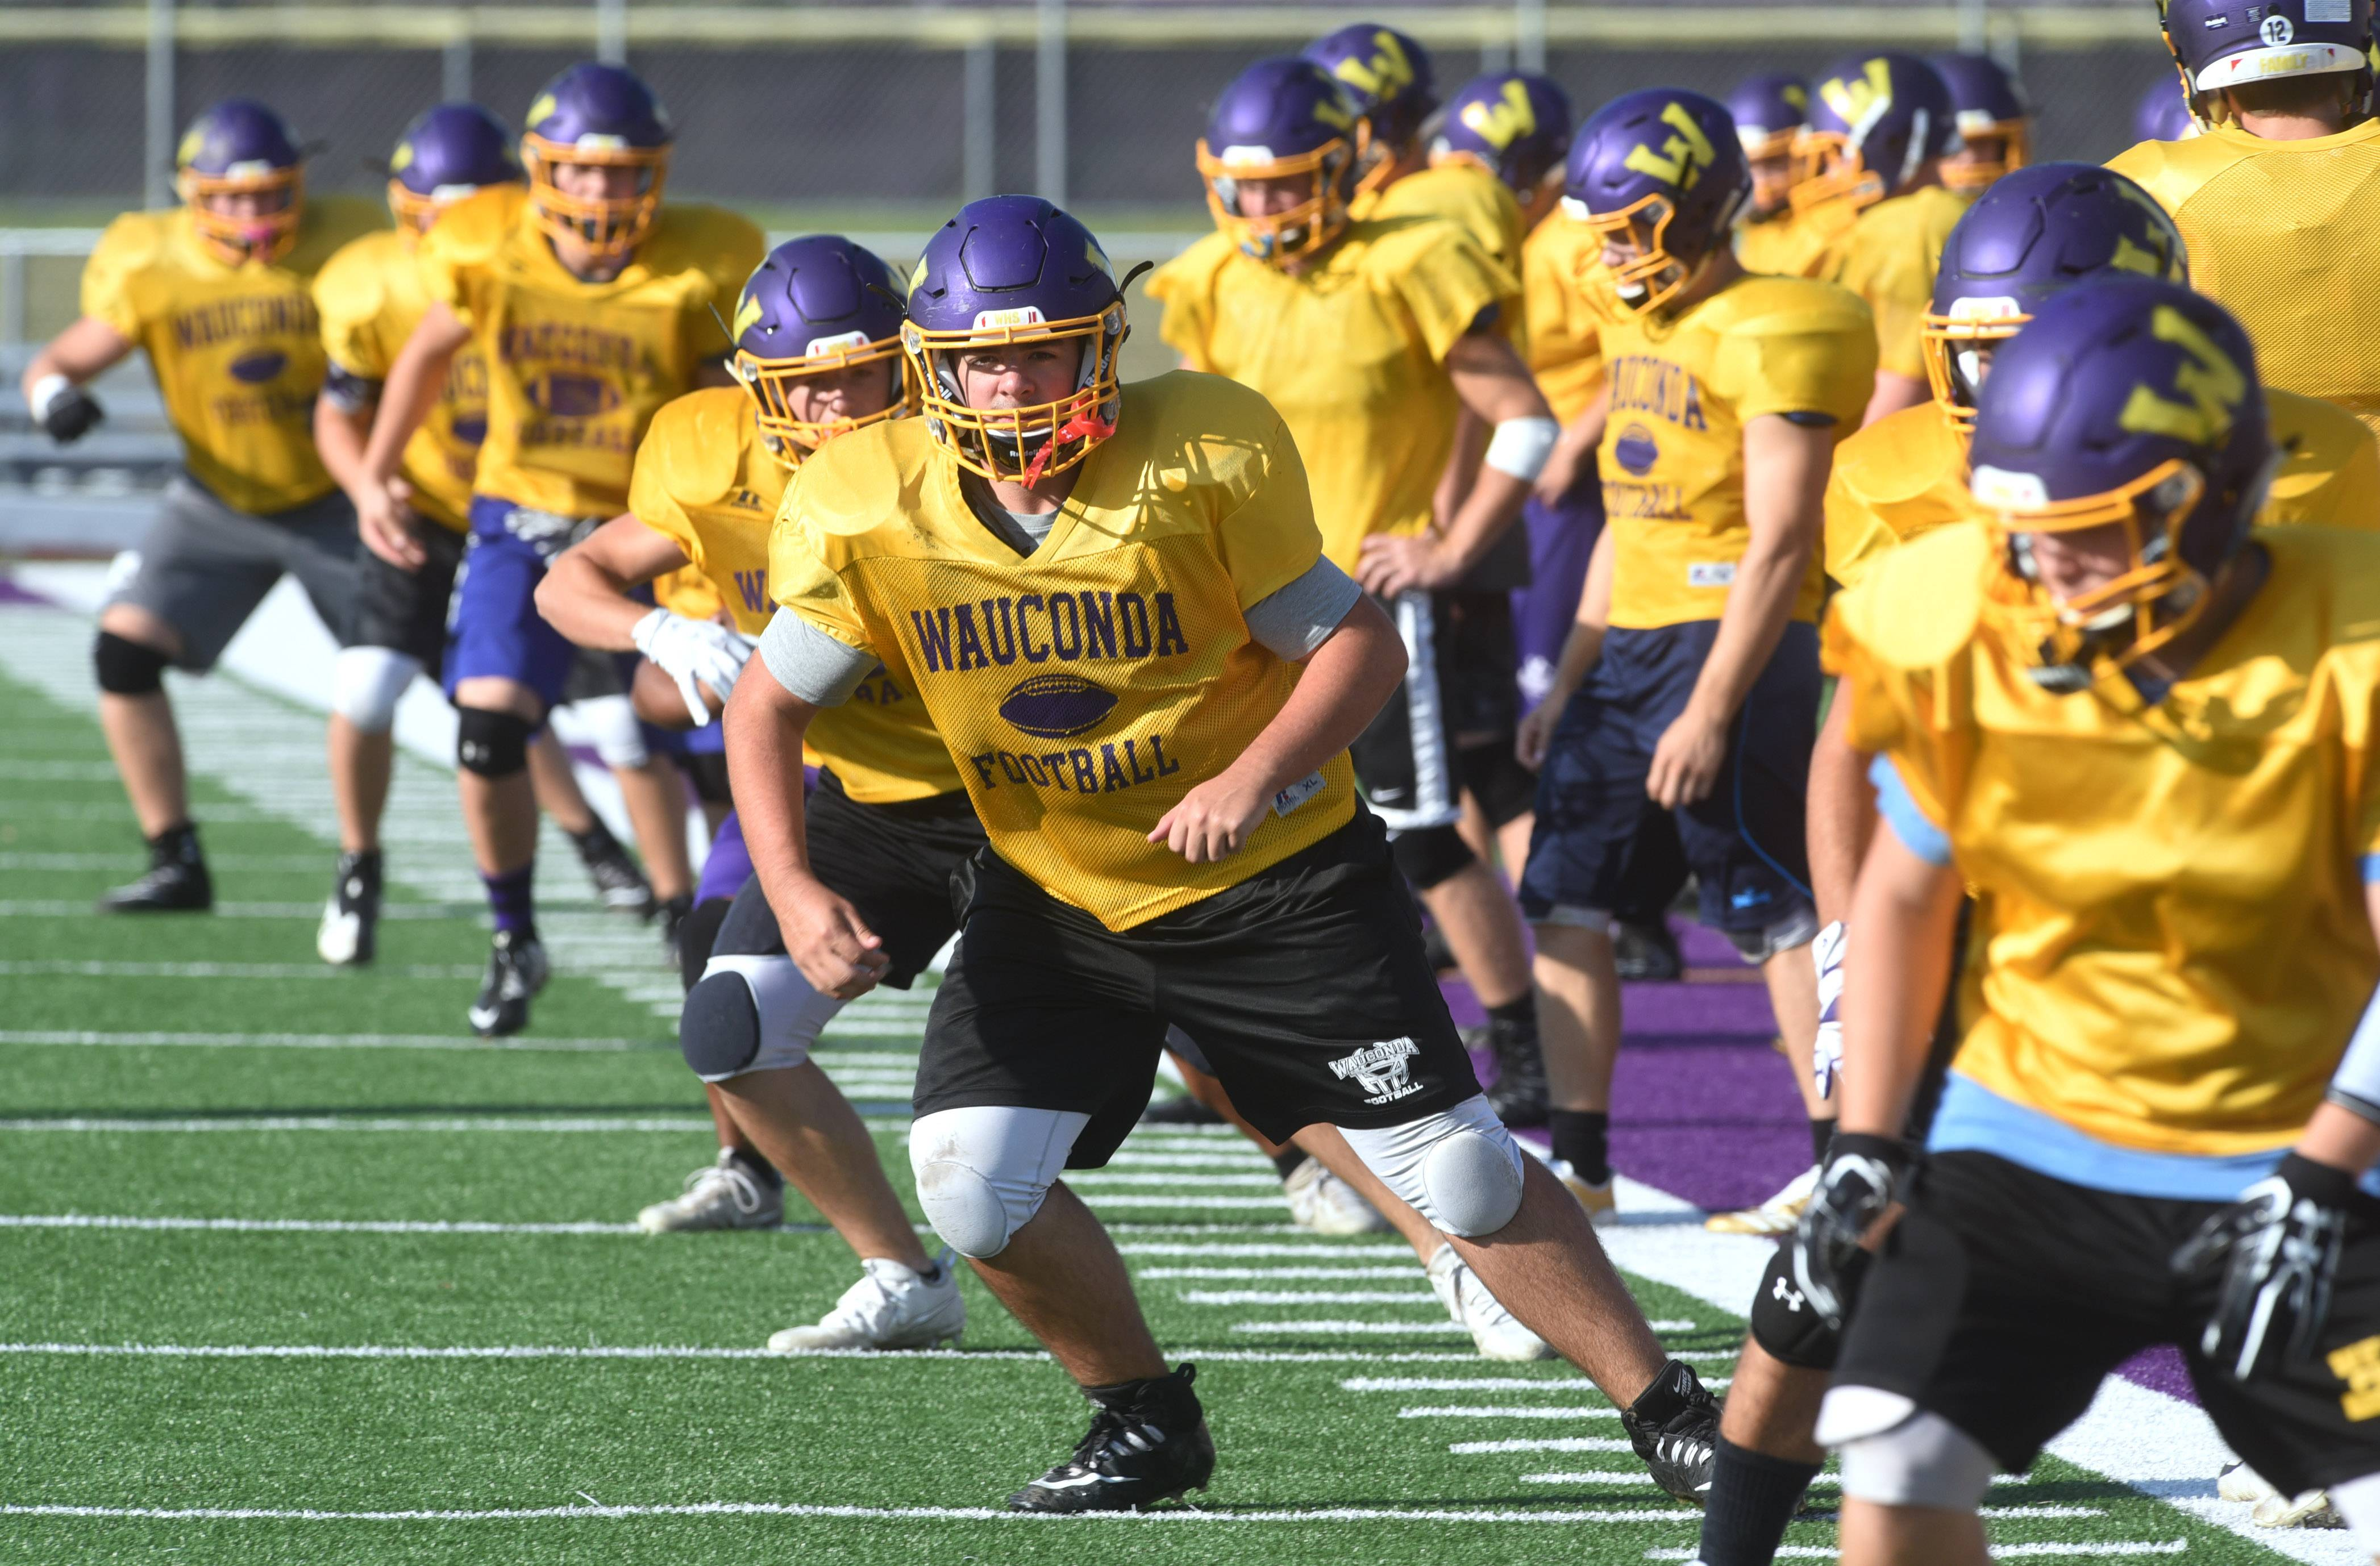 Wauconda's football players are among the many trying to come to terms with the sudden loss of assistant coach Joe Ryback.